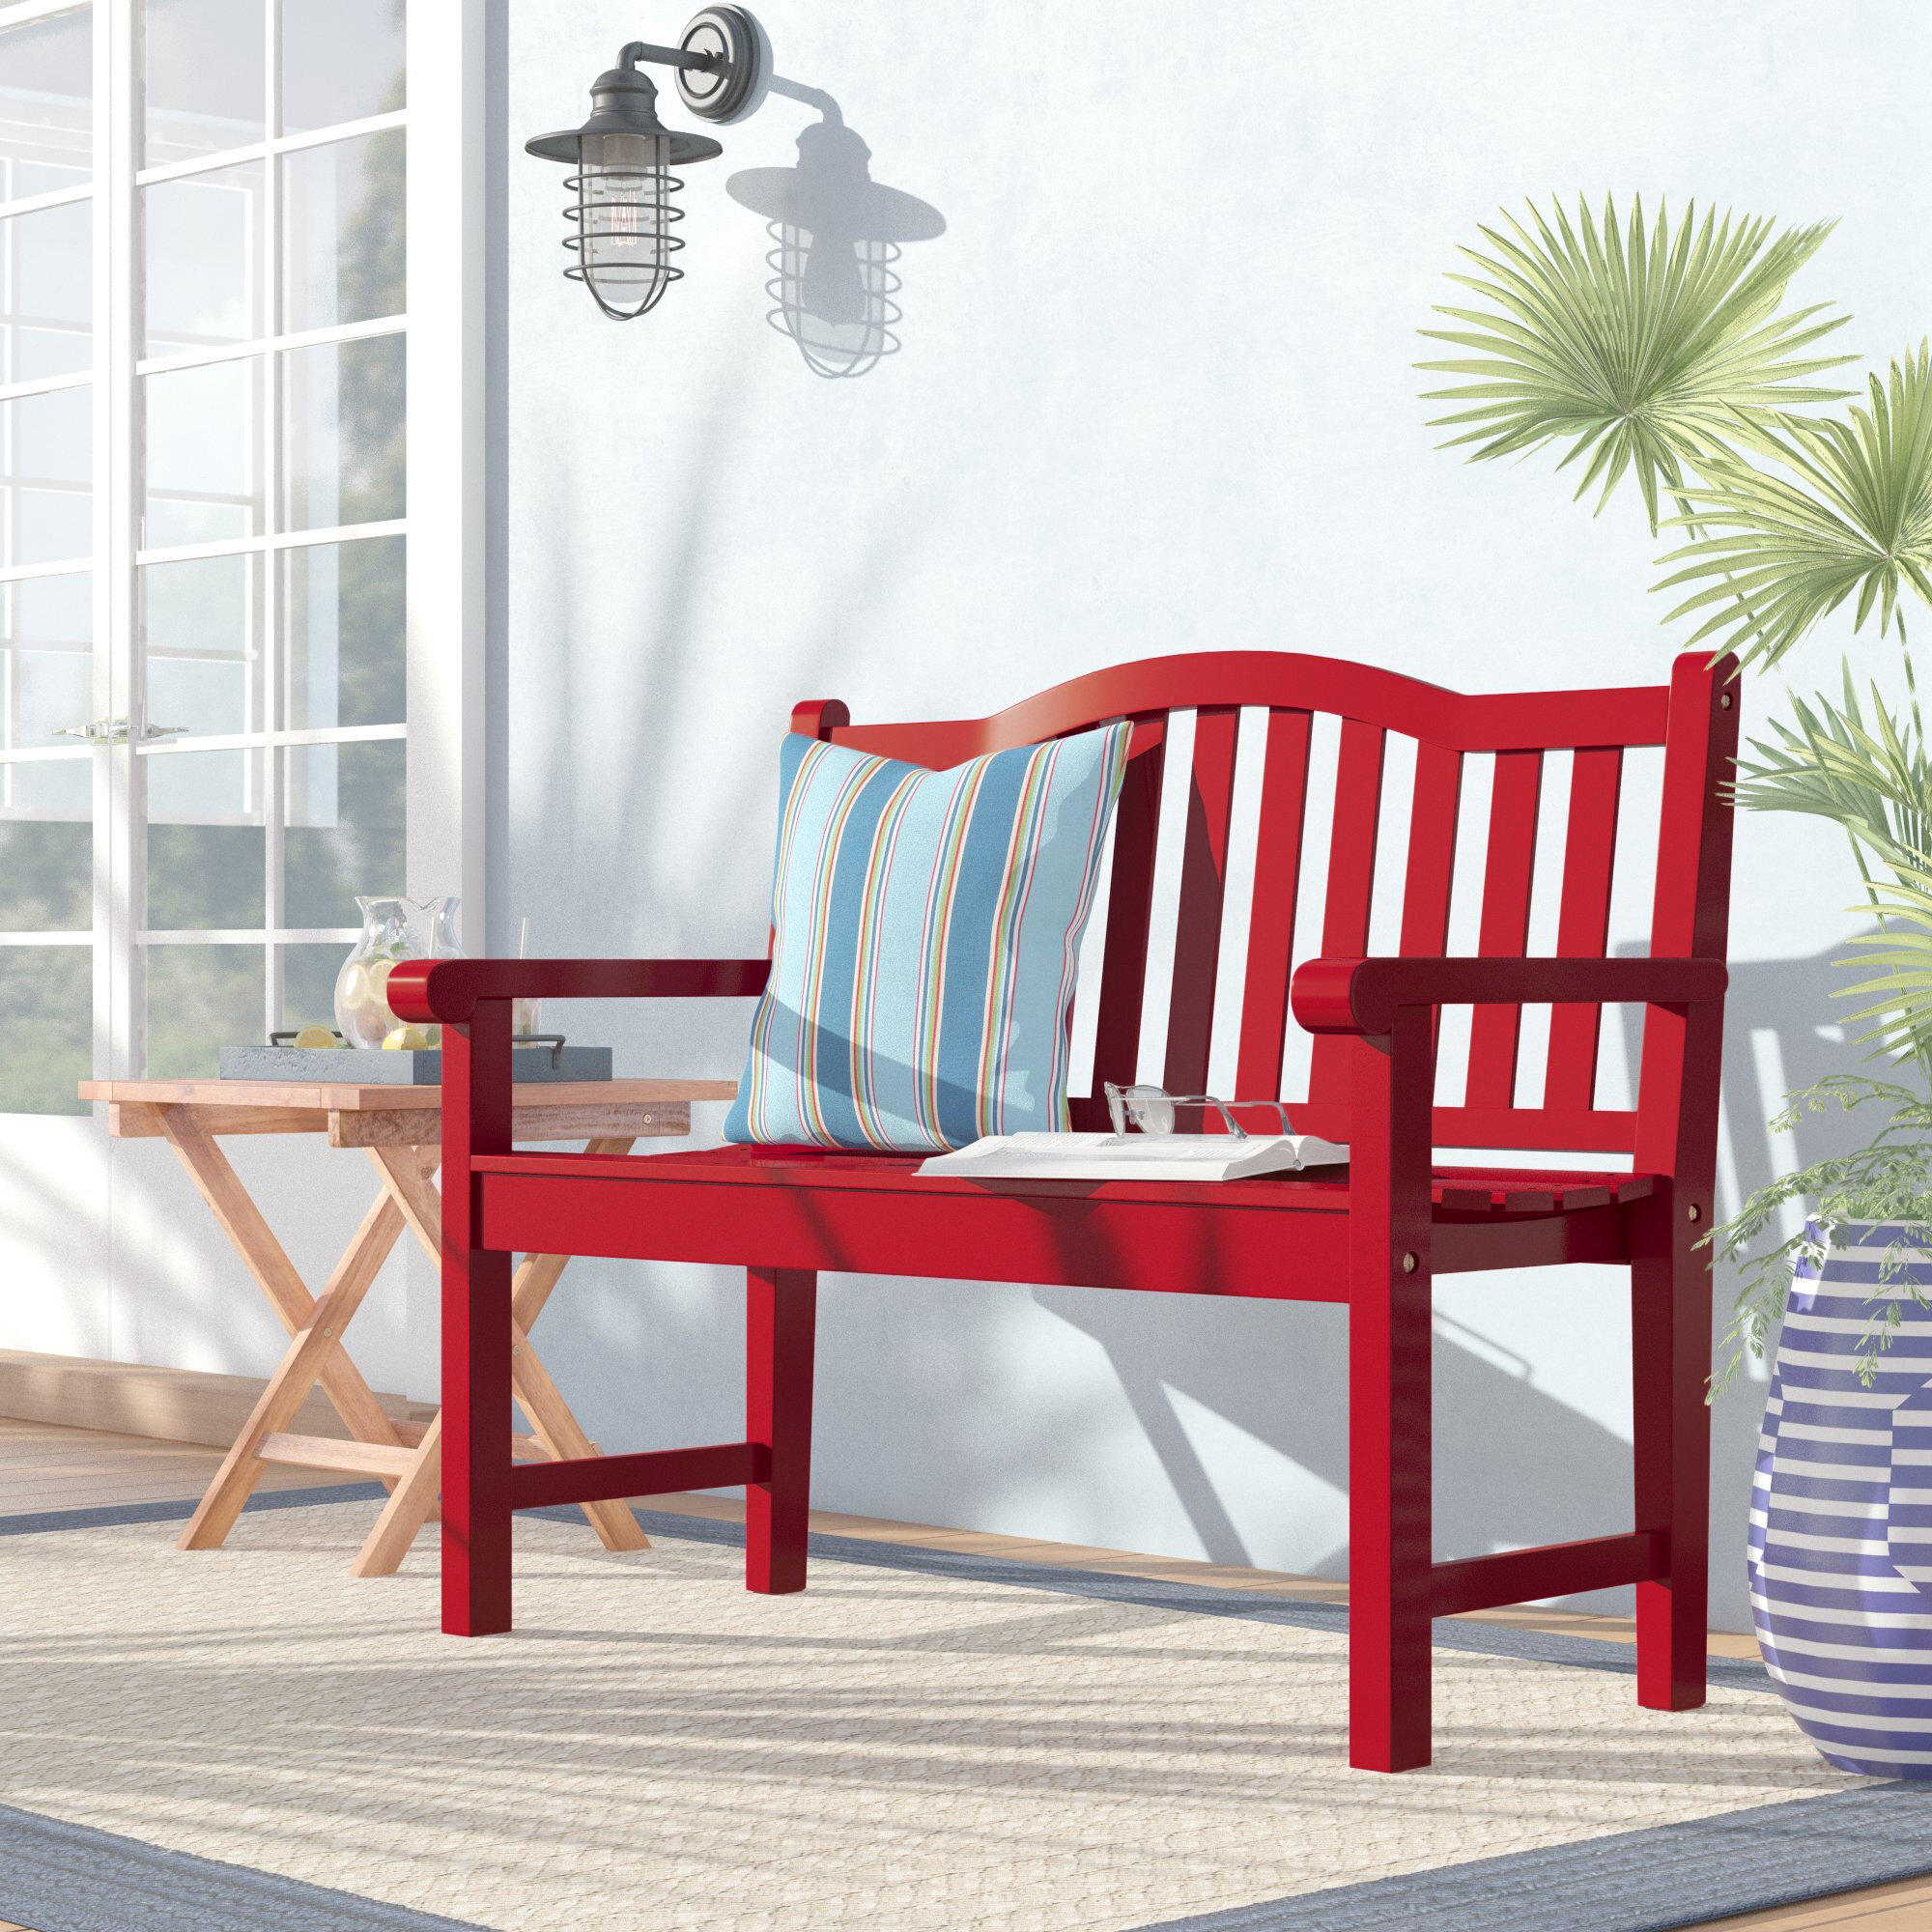 Wood Benches You Ll Love Wayfair Ca